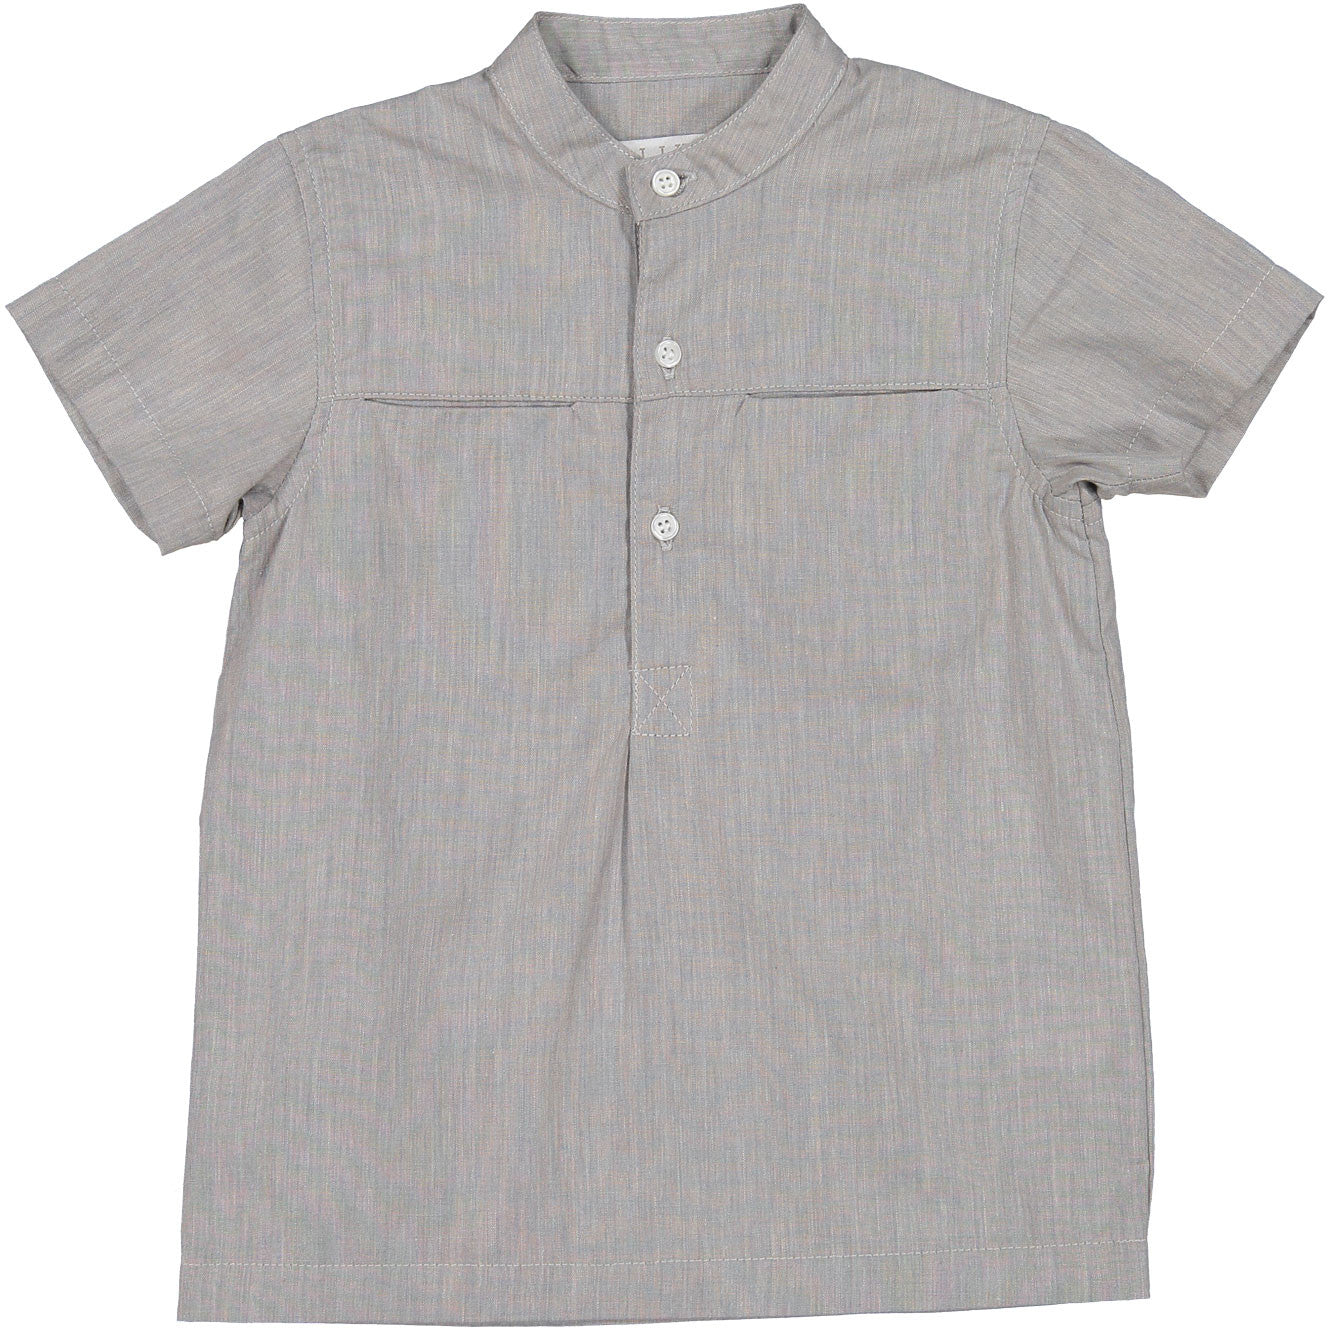 Liho Grey Pete Shirt - Ladida